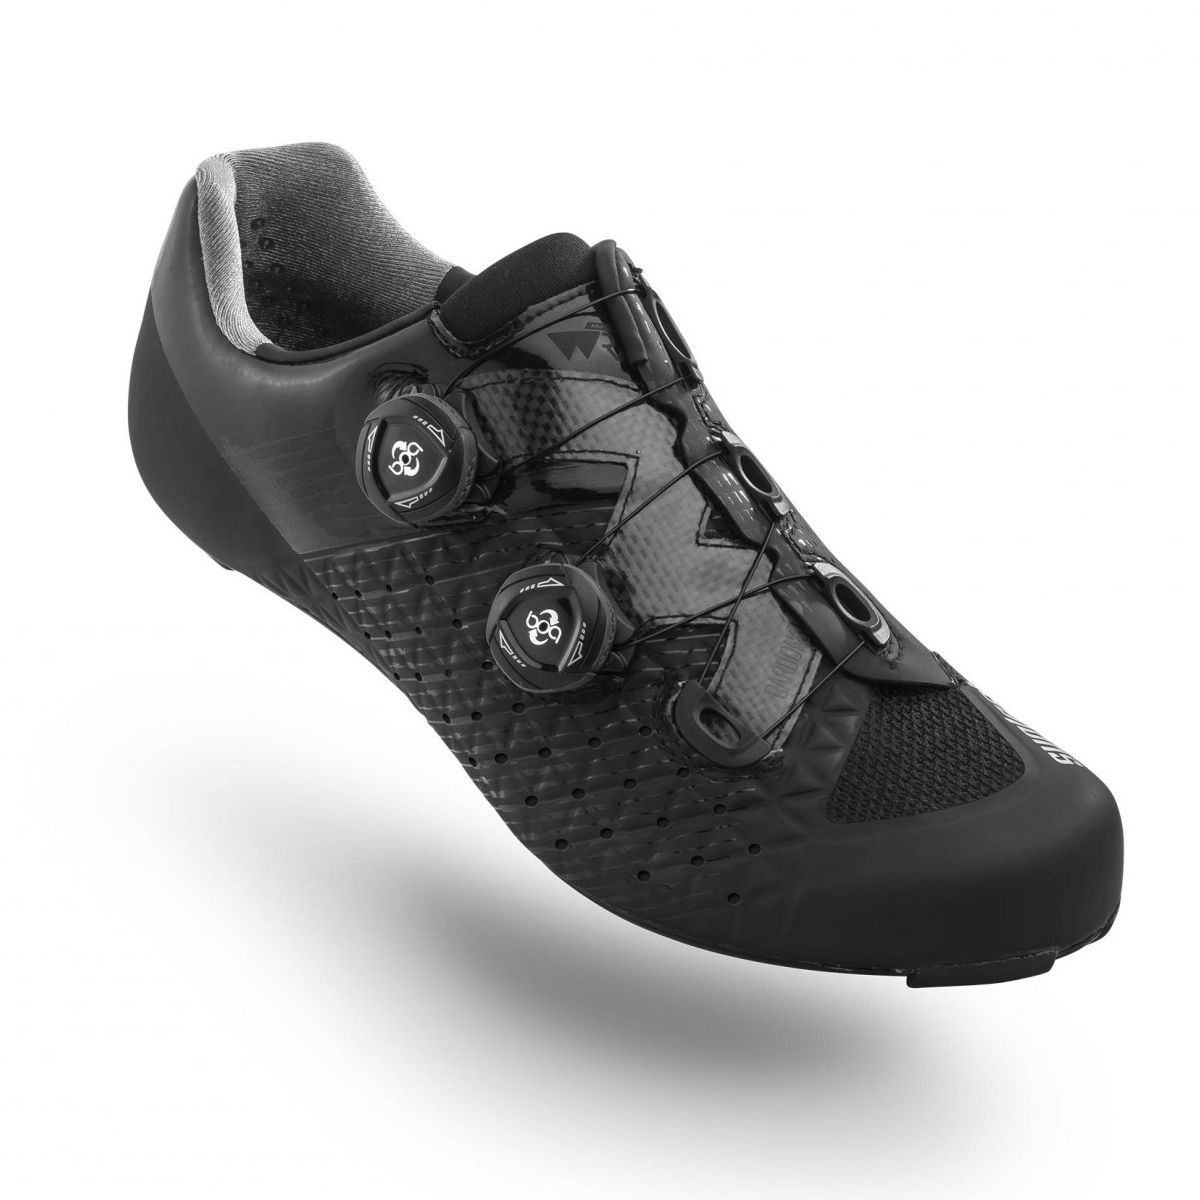 ROAD EDGE 3 PRO road shoes